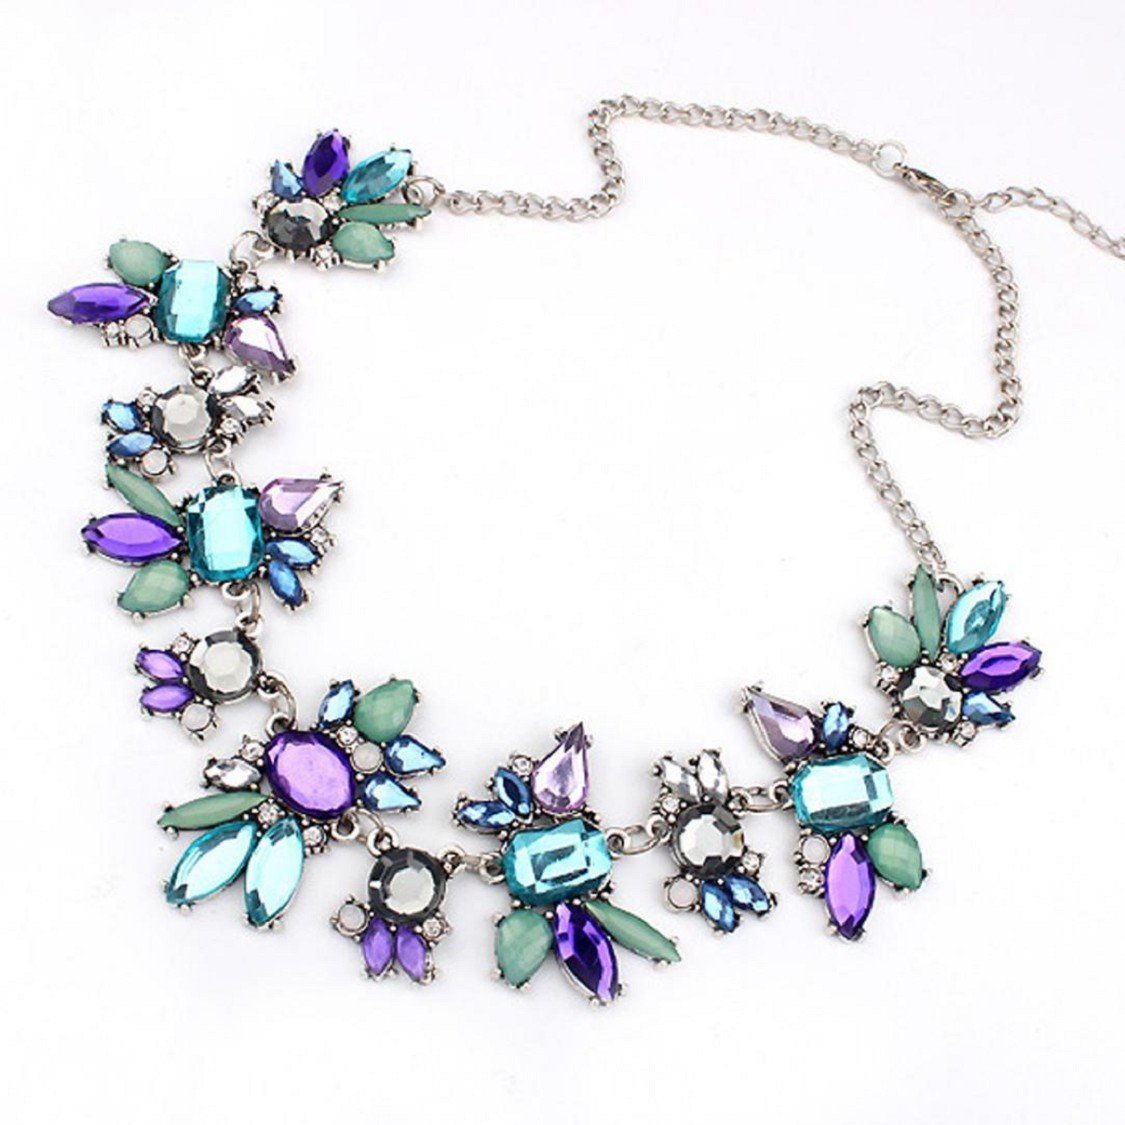 Ikevan 2017 Hot Selling Necklace Women Fresh Wild Fashion Delicate Clavicle Necklace (Purple)